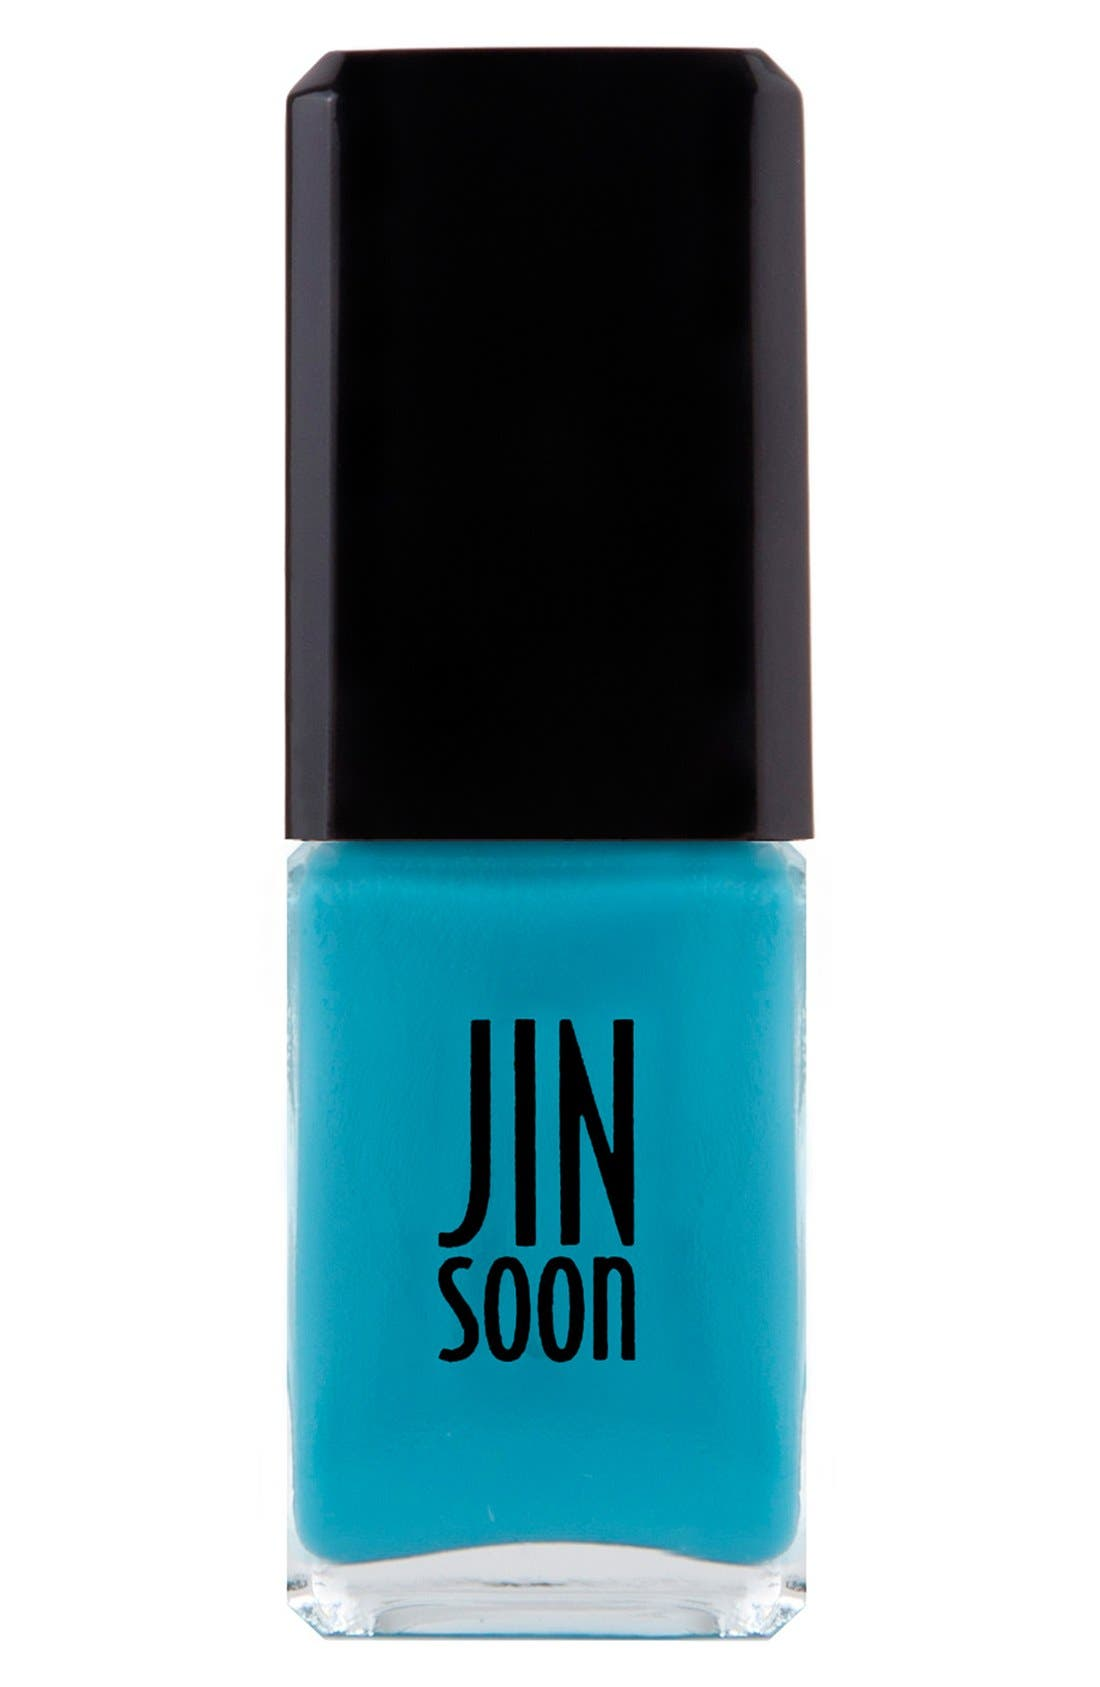 JINsoon 'Poppy Blue' Nail Lacquer